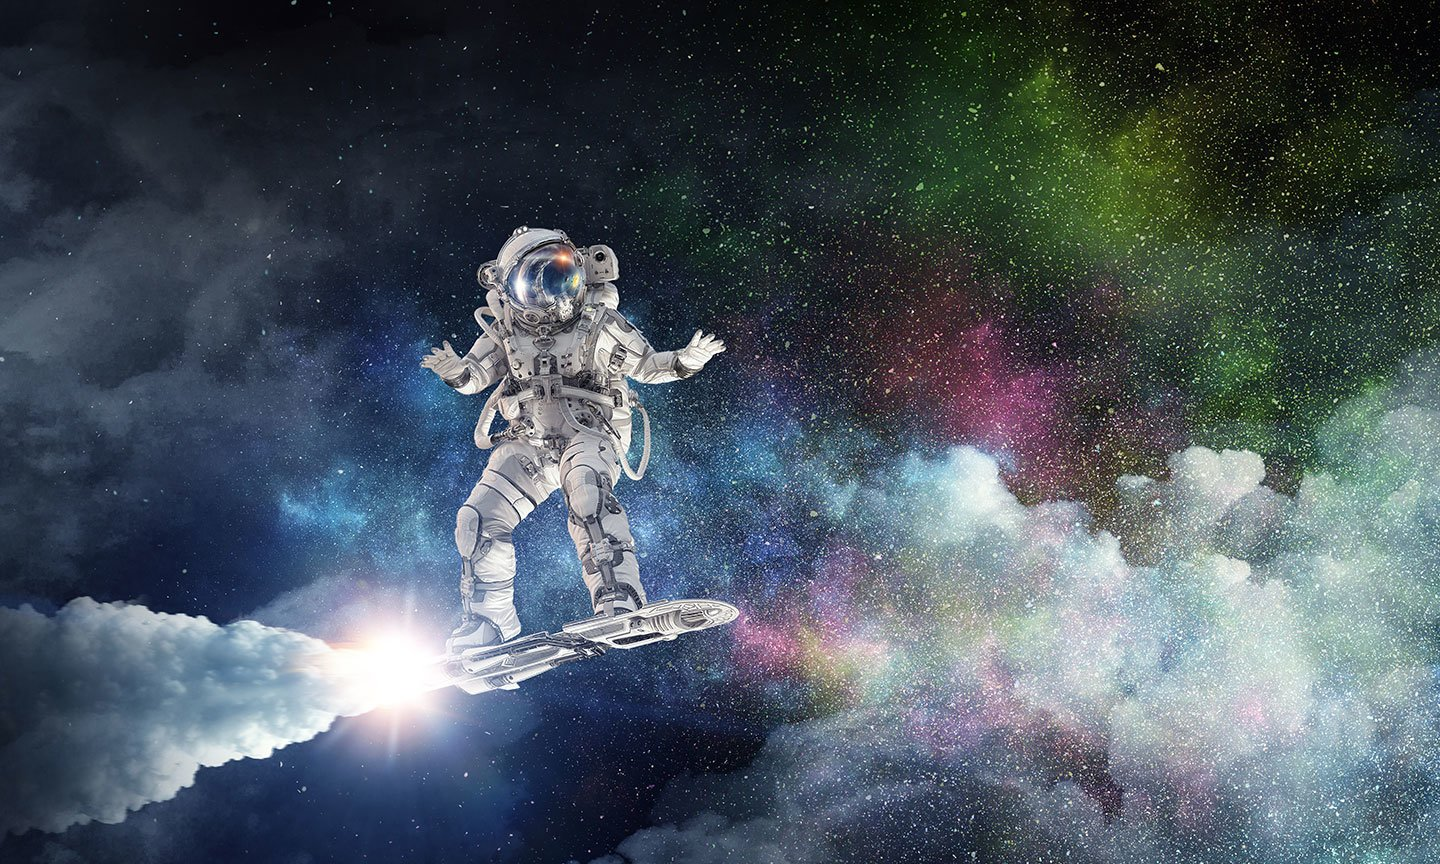 Astronaut on a rocket-powered surf board in space